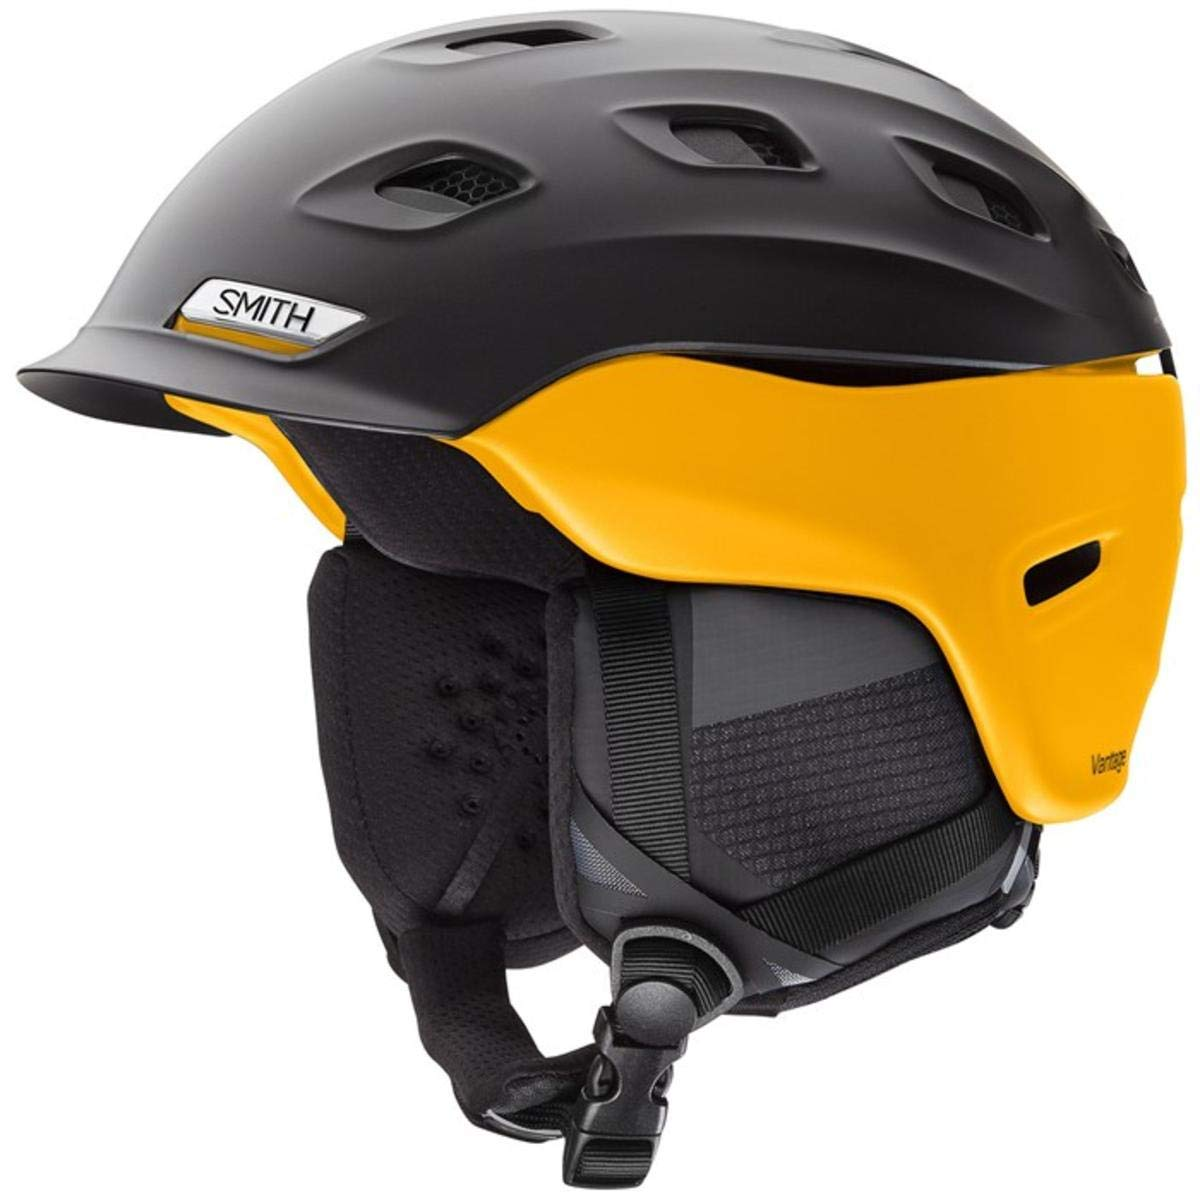 Top 15 Best Ski Helmet for Kids Reviews in 2020 7